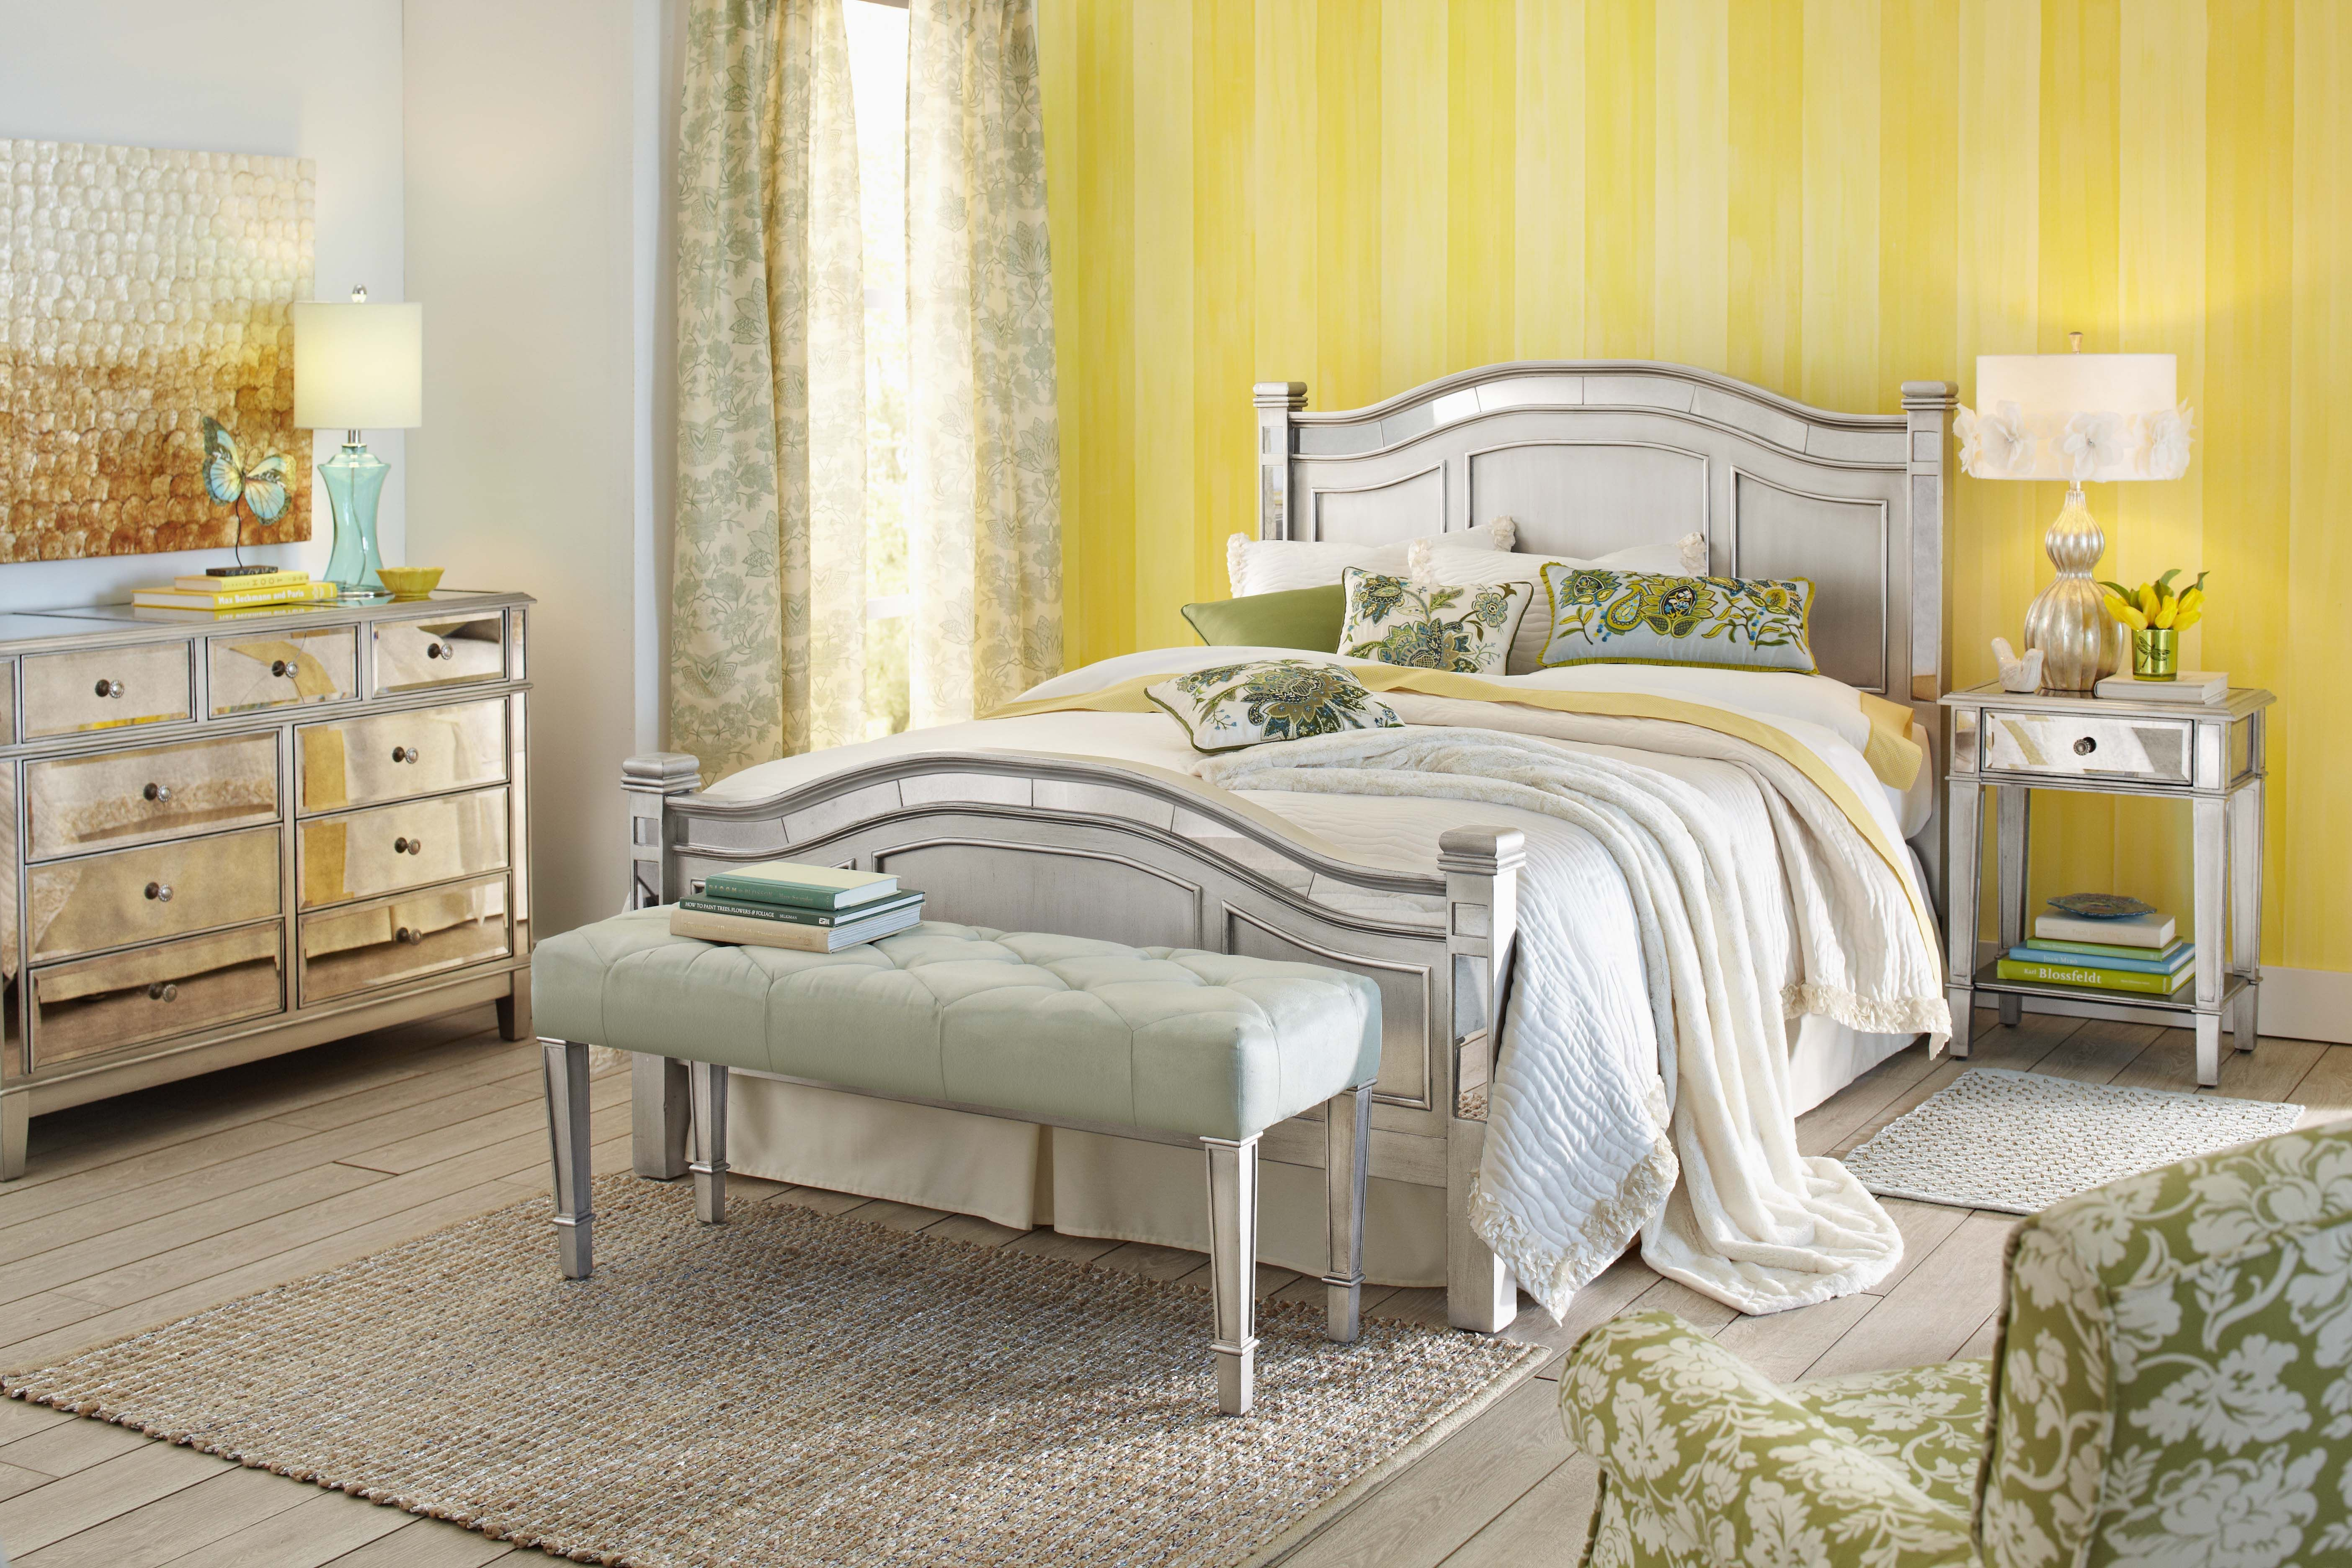 Pier 1 Bedroom Furniture Hayworth Headboards Silver Bedroom Design